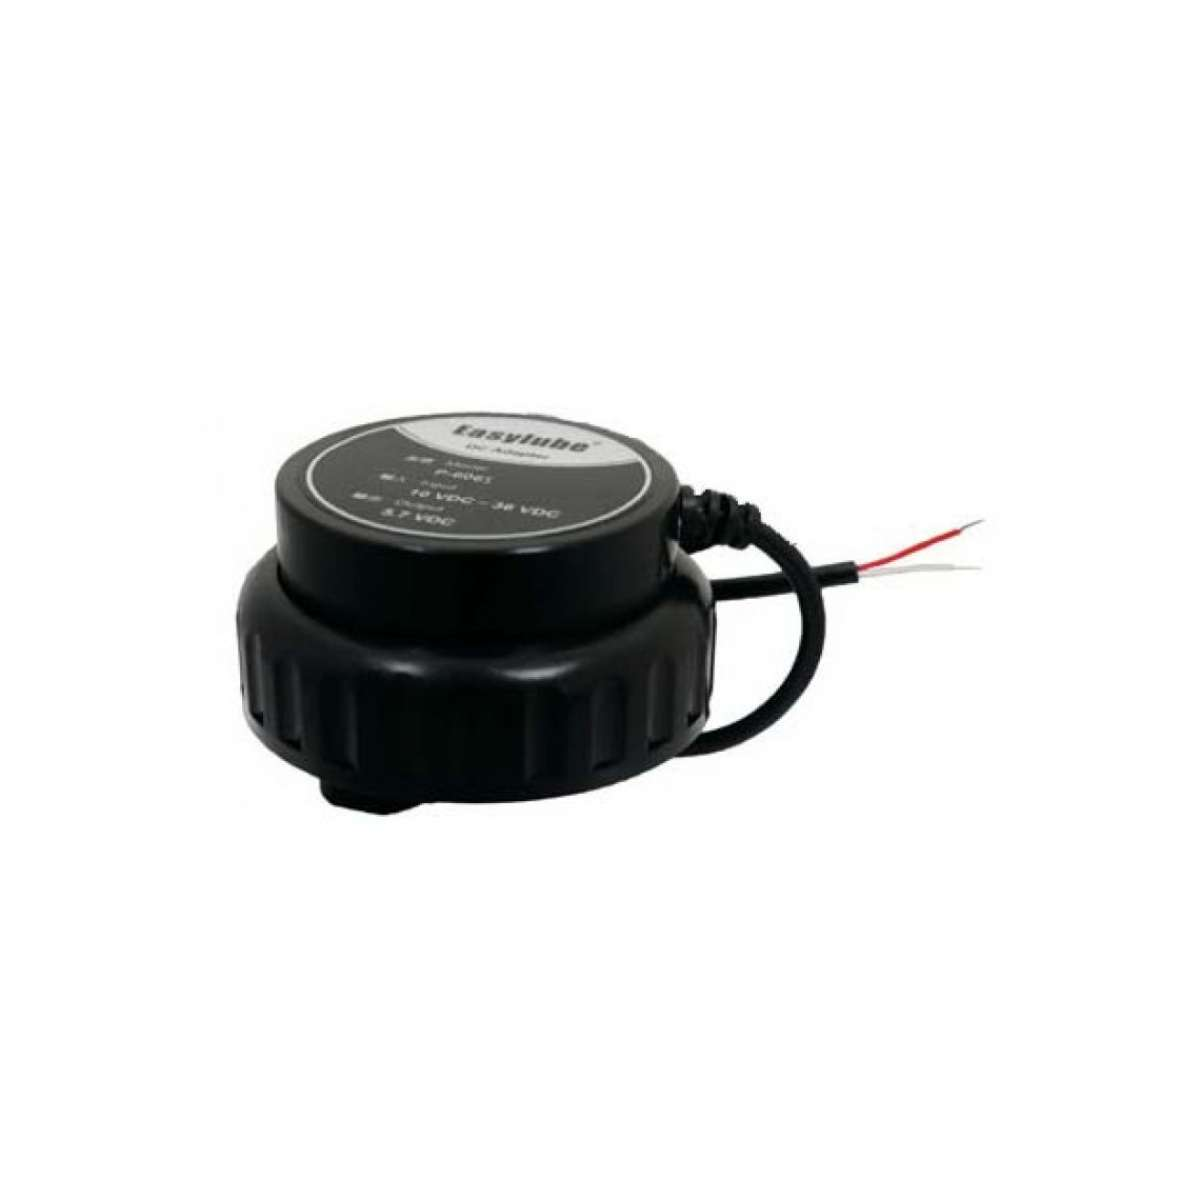 Easylube POWER SUPPLY ADAPTOR DC 10V - 36V (FOR 150ml UNITS)